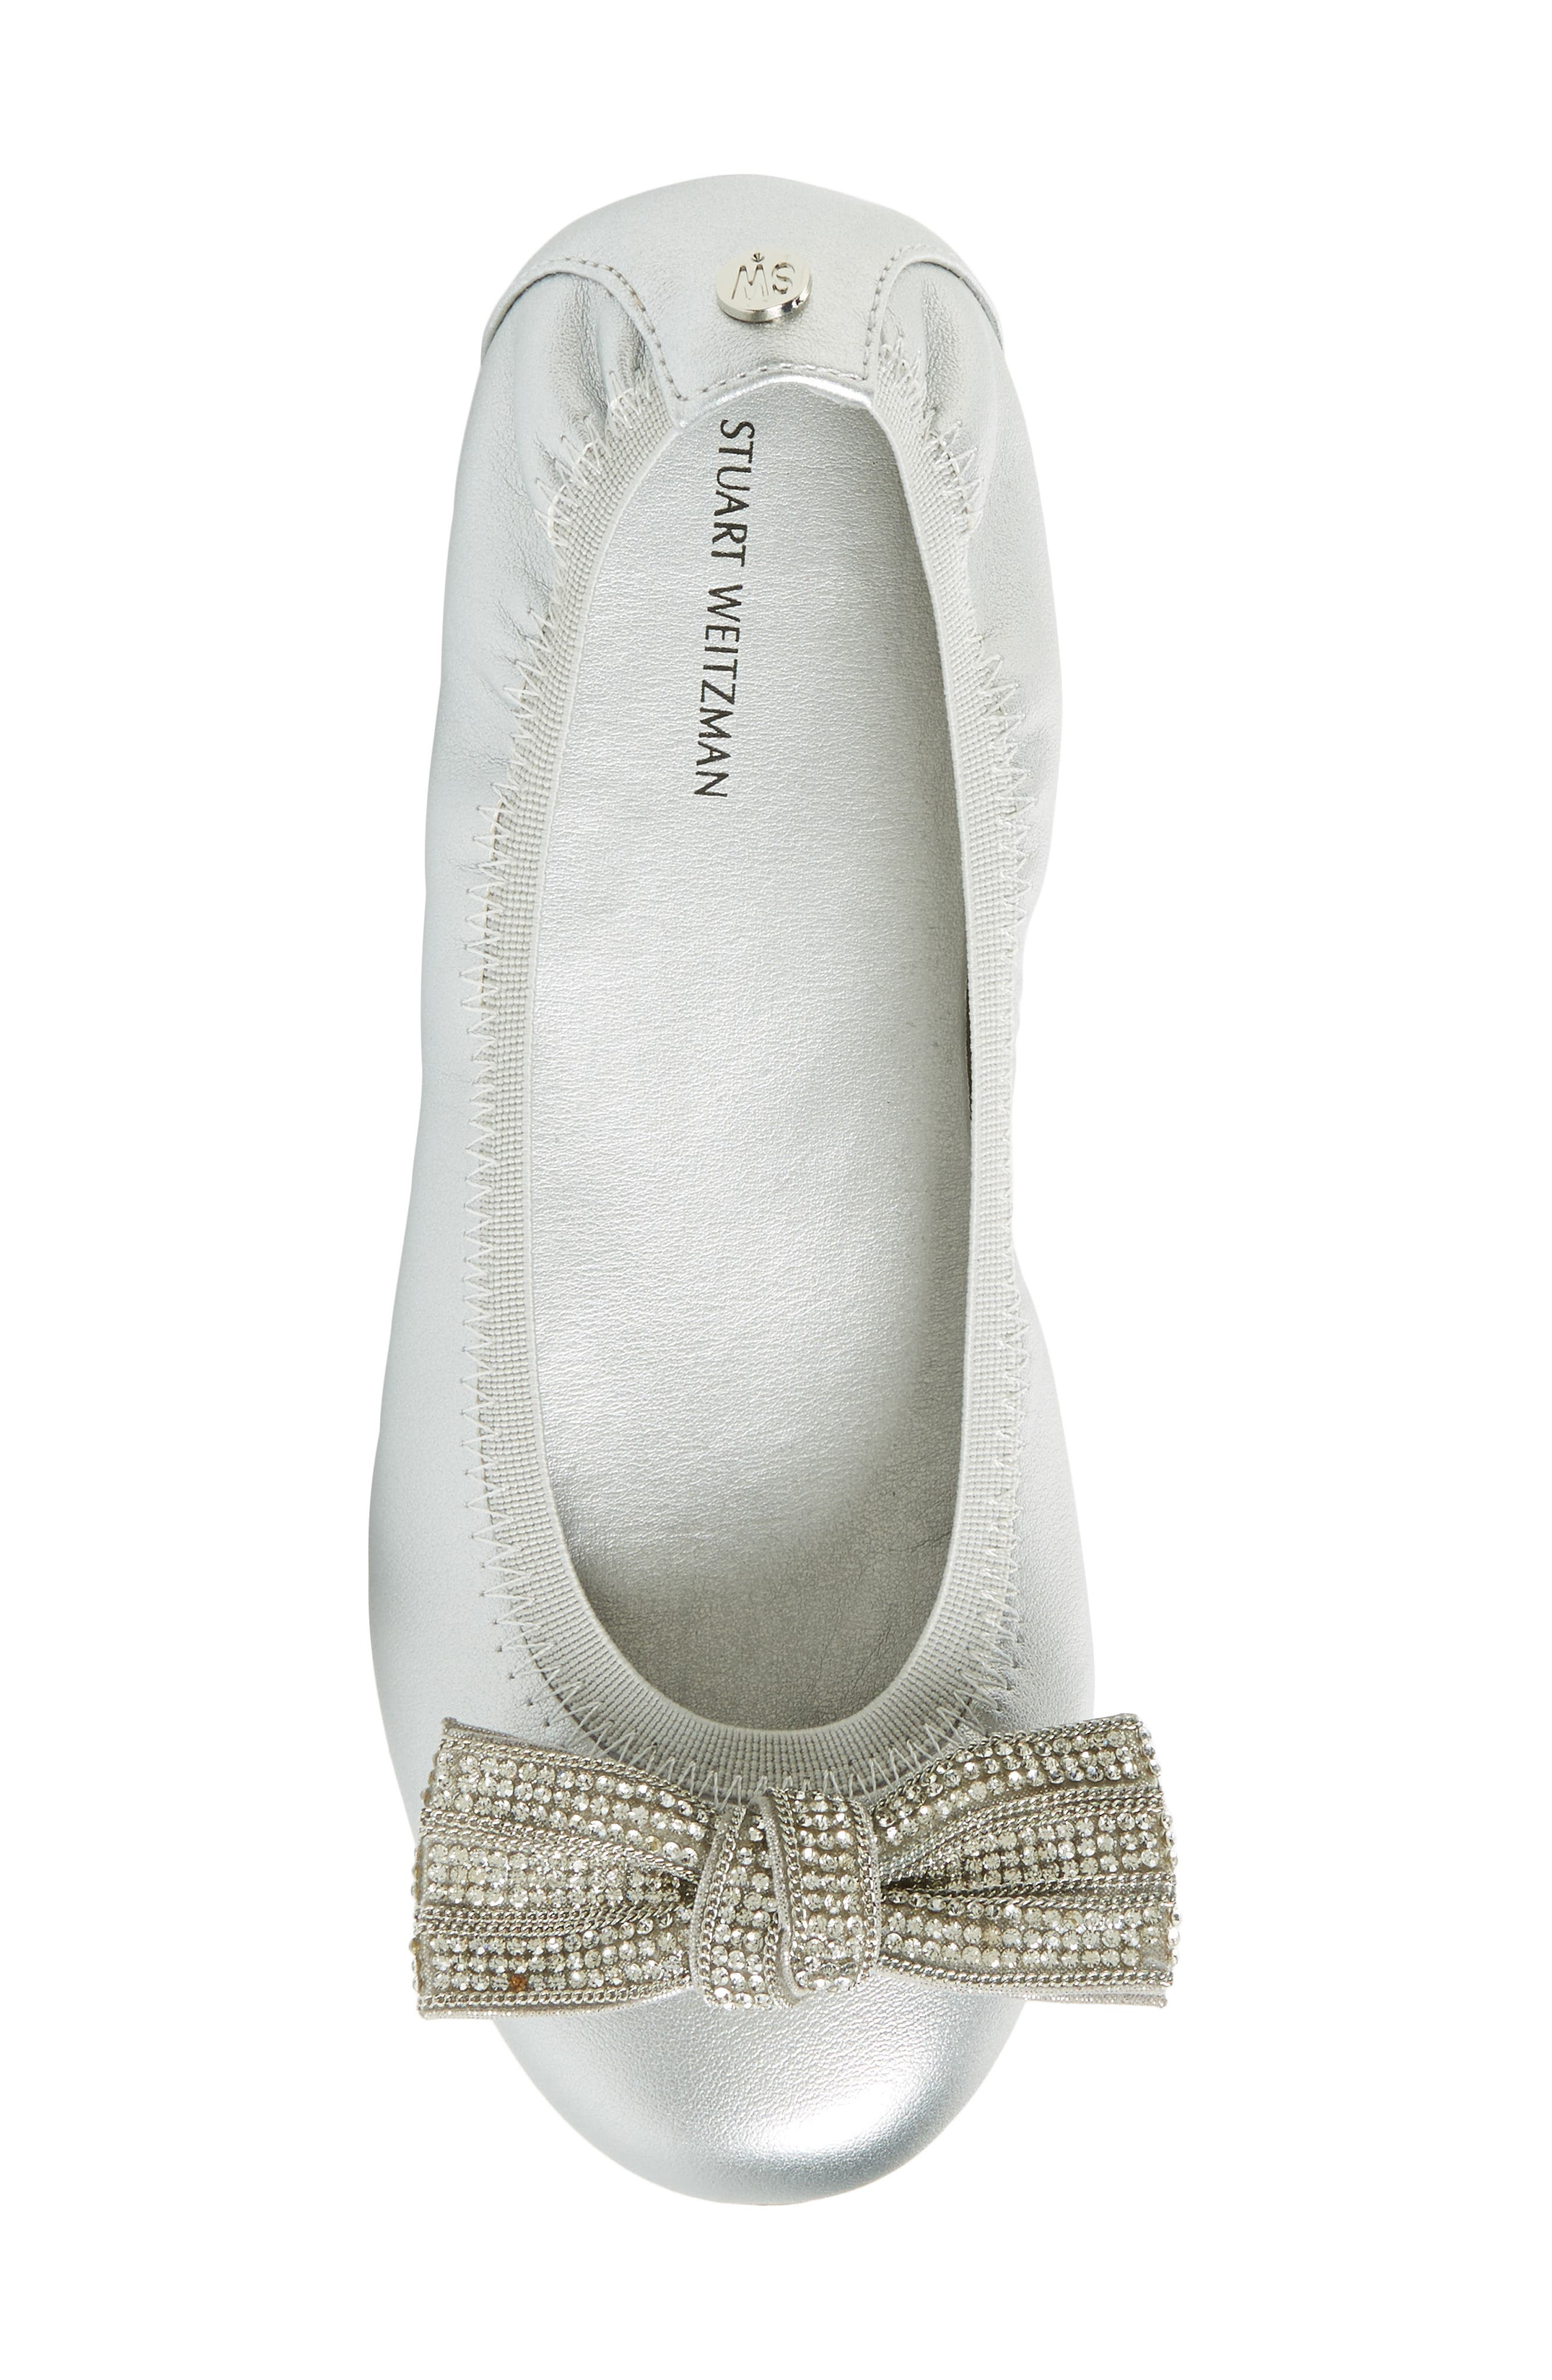 Fannie Embellished Bow Ballet Flat,                             Alternate thumbnail 5, color,                             044